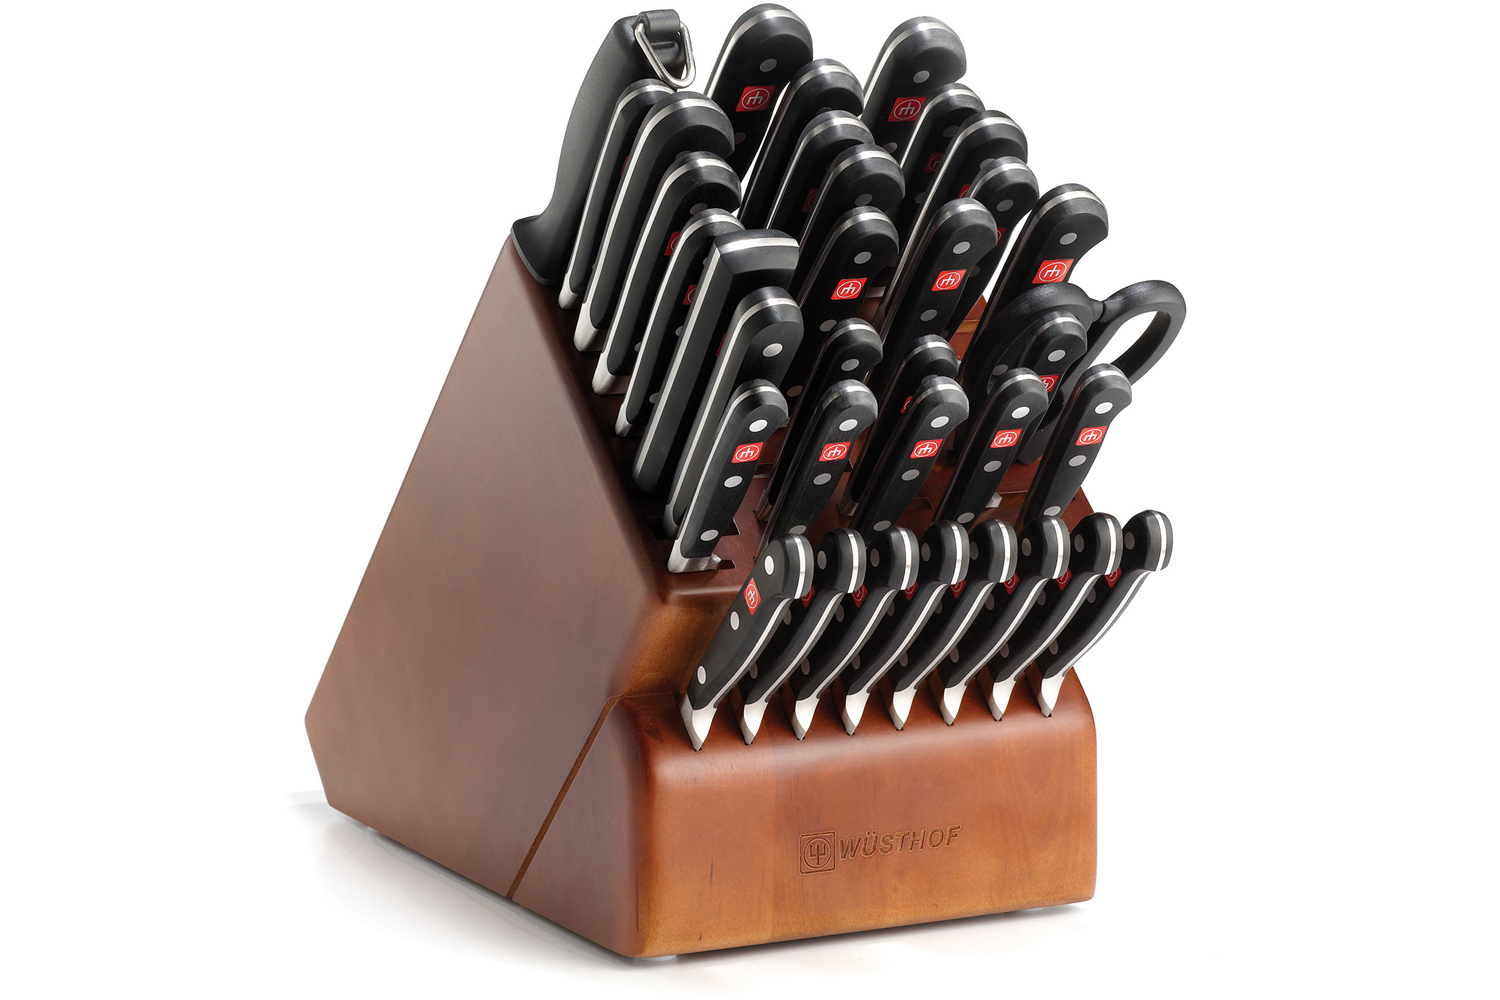 Wusthof Classic 36 Piece Knife Block Set